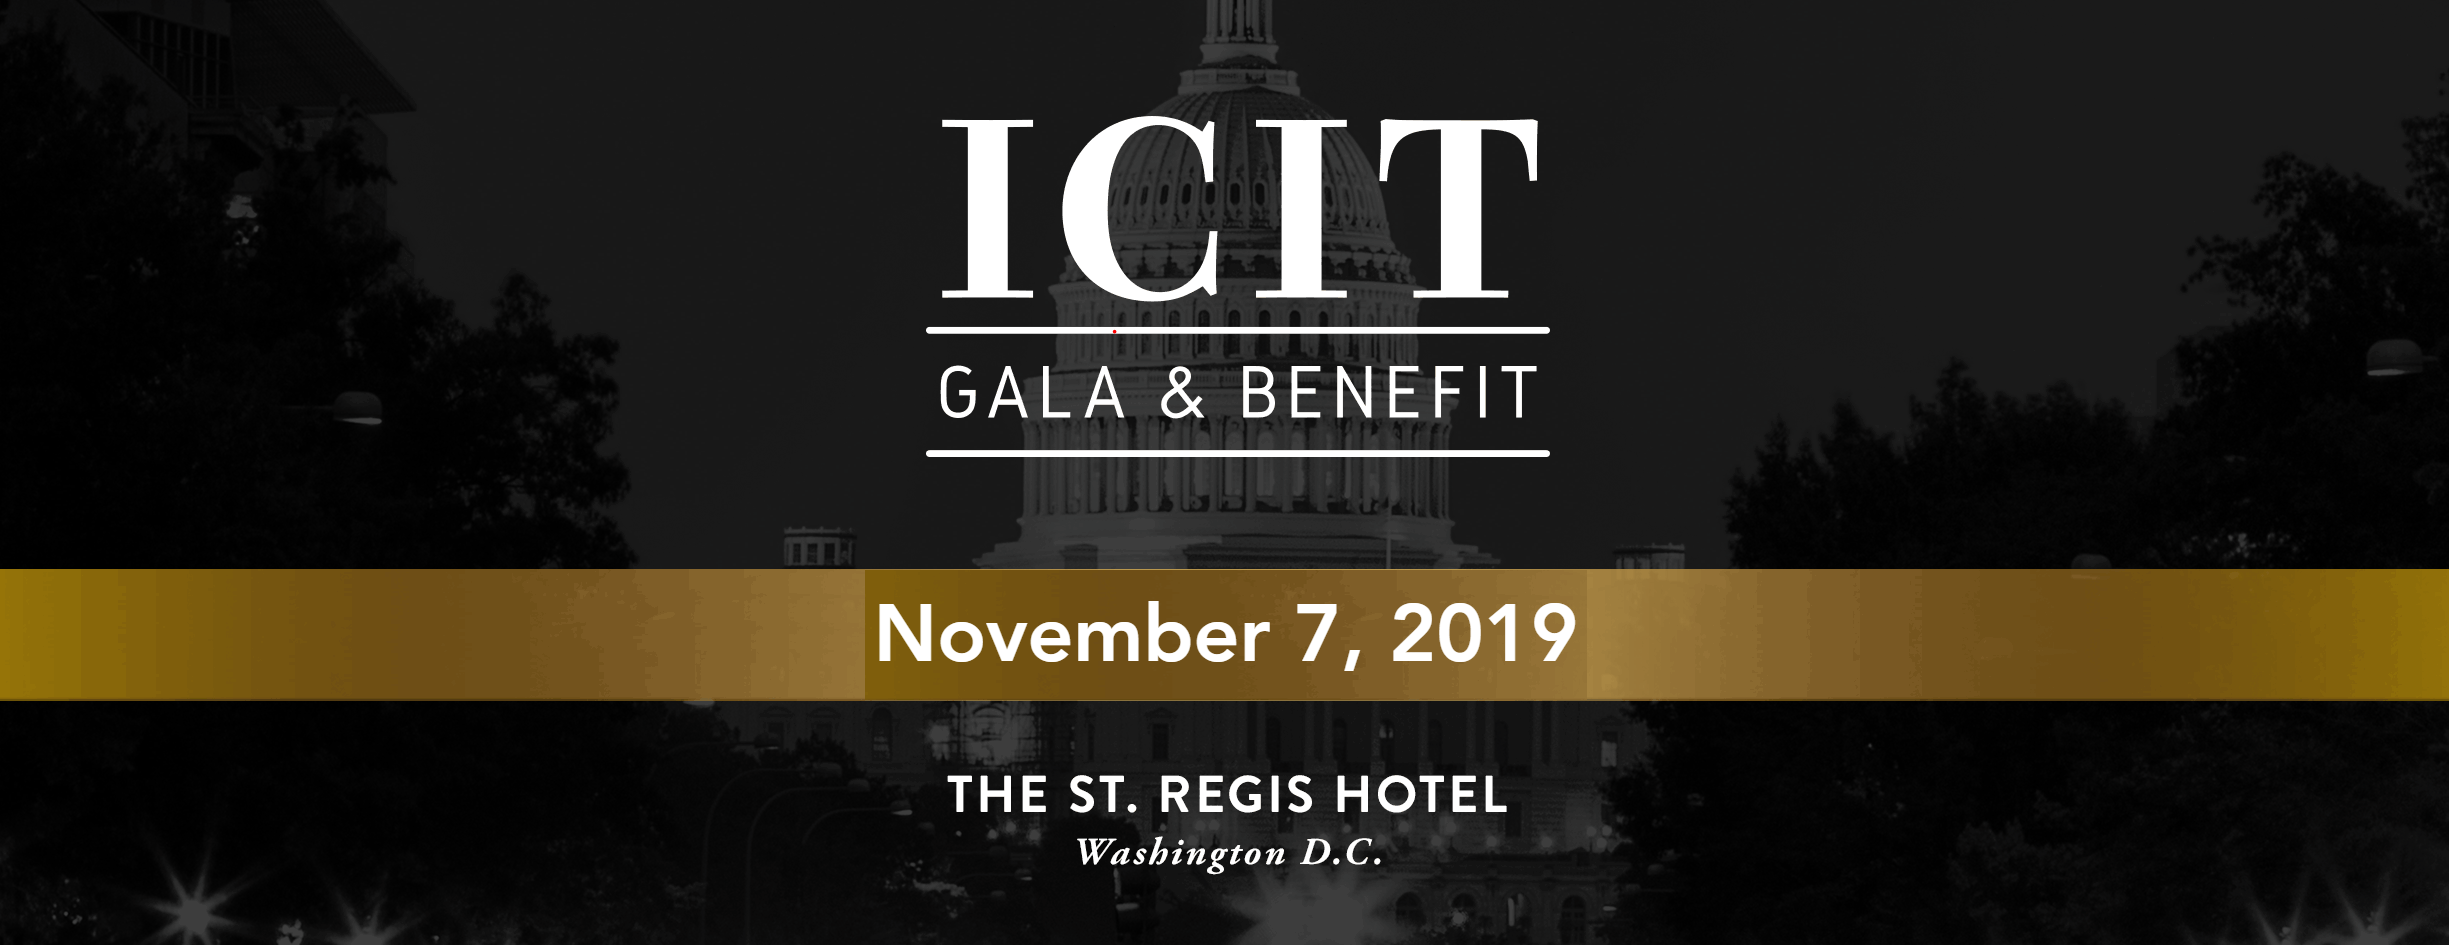 ICIT Gala, ICIT, 2019 ICIT Gala & Benefit, ICIT, Institute for Critical Infrastructure Technology, Parham Eftekhari, Cybersecurity Think Tank,